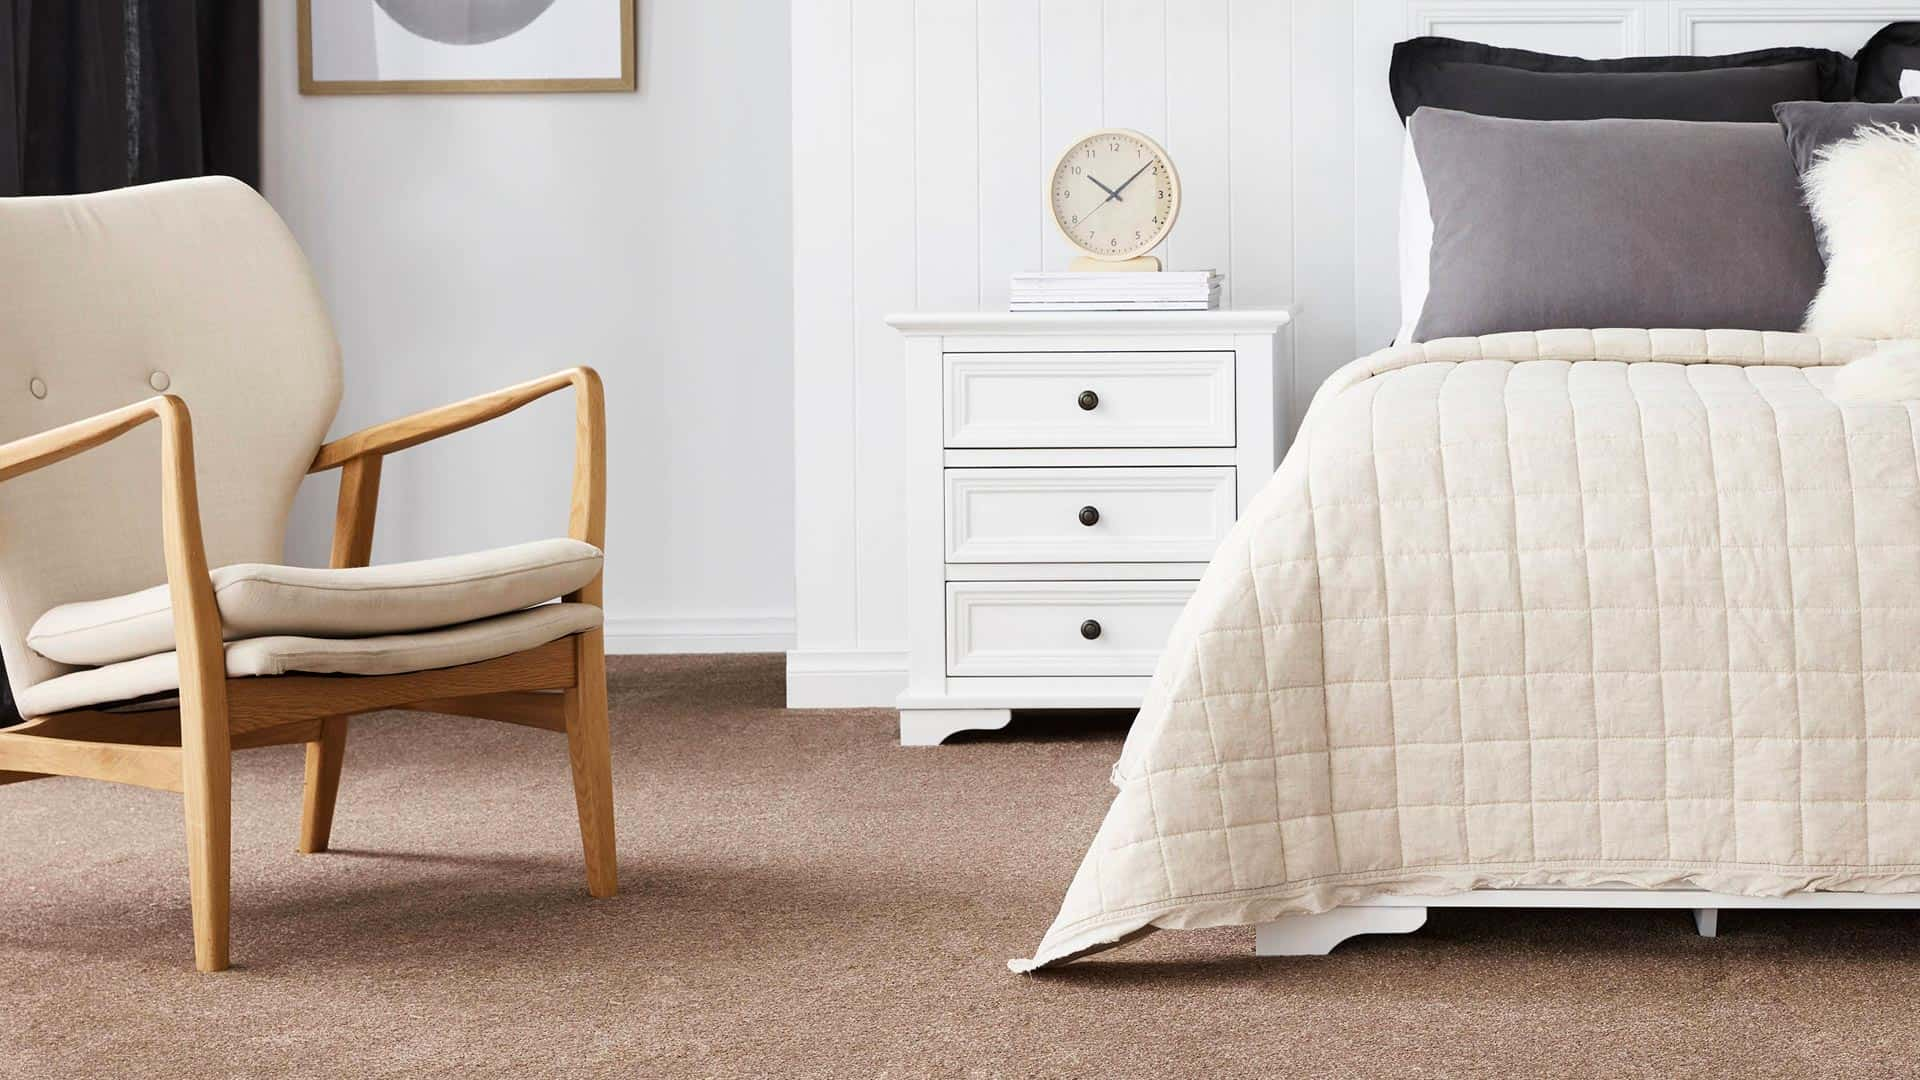 How to Choose a Carpet for a Bedroom